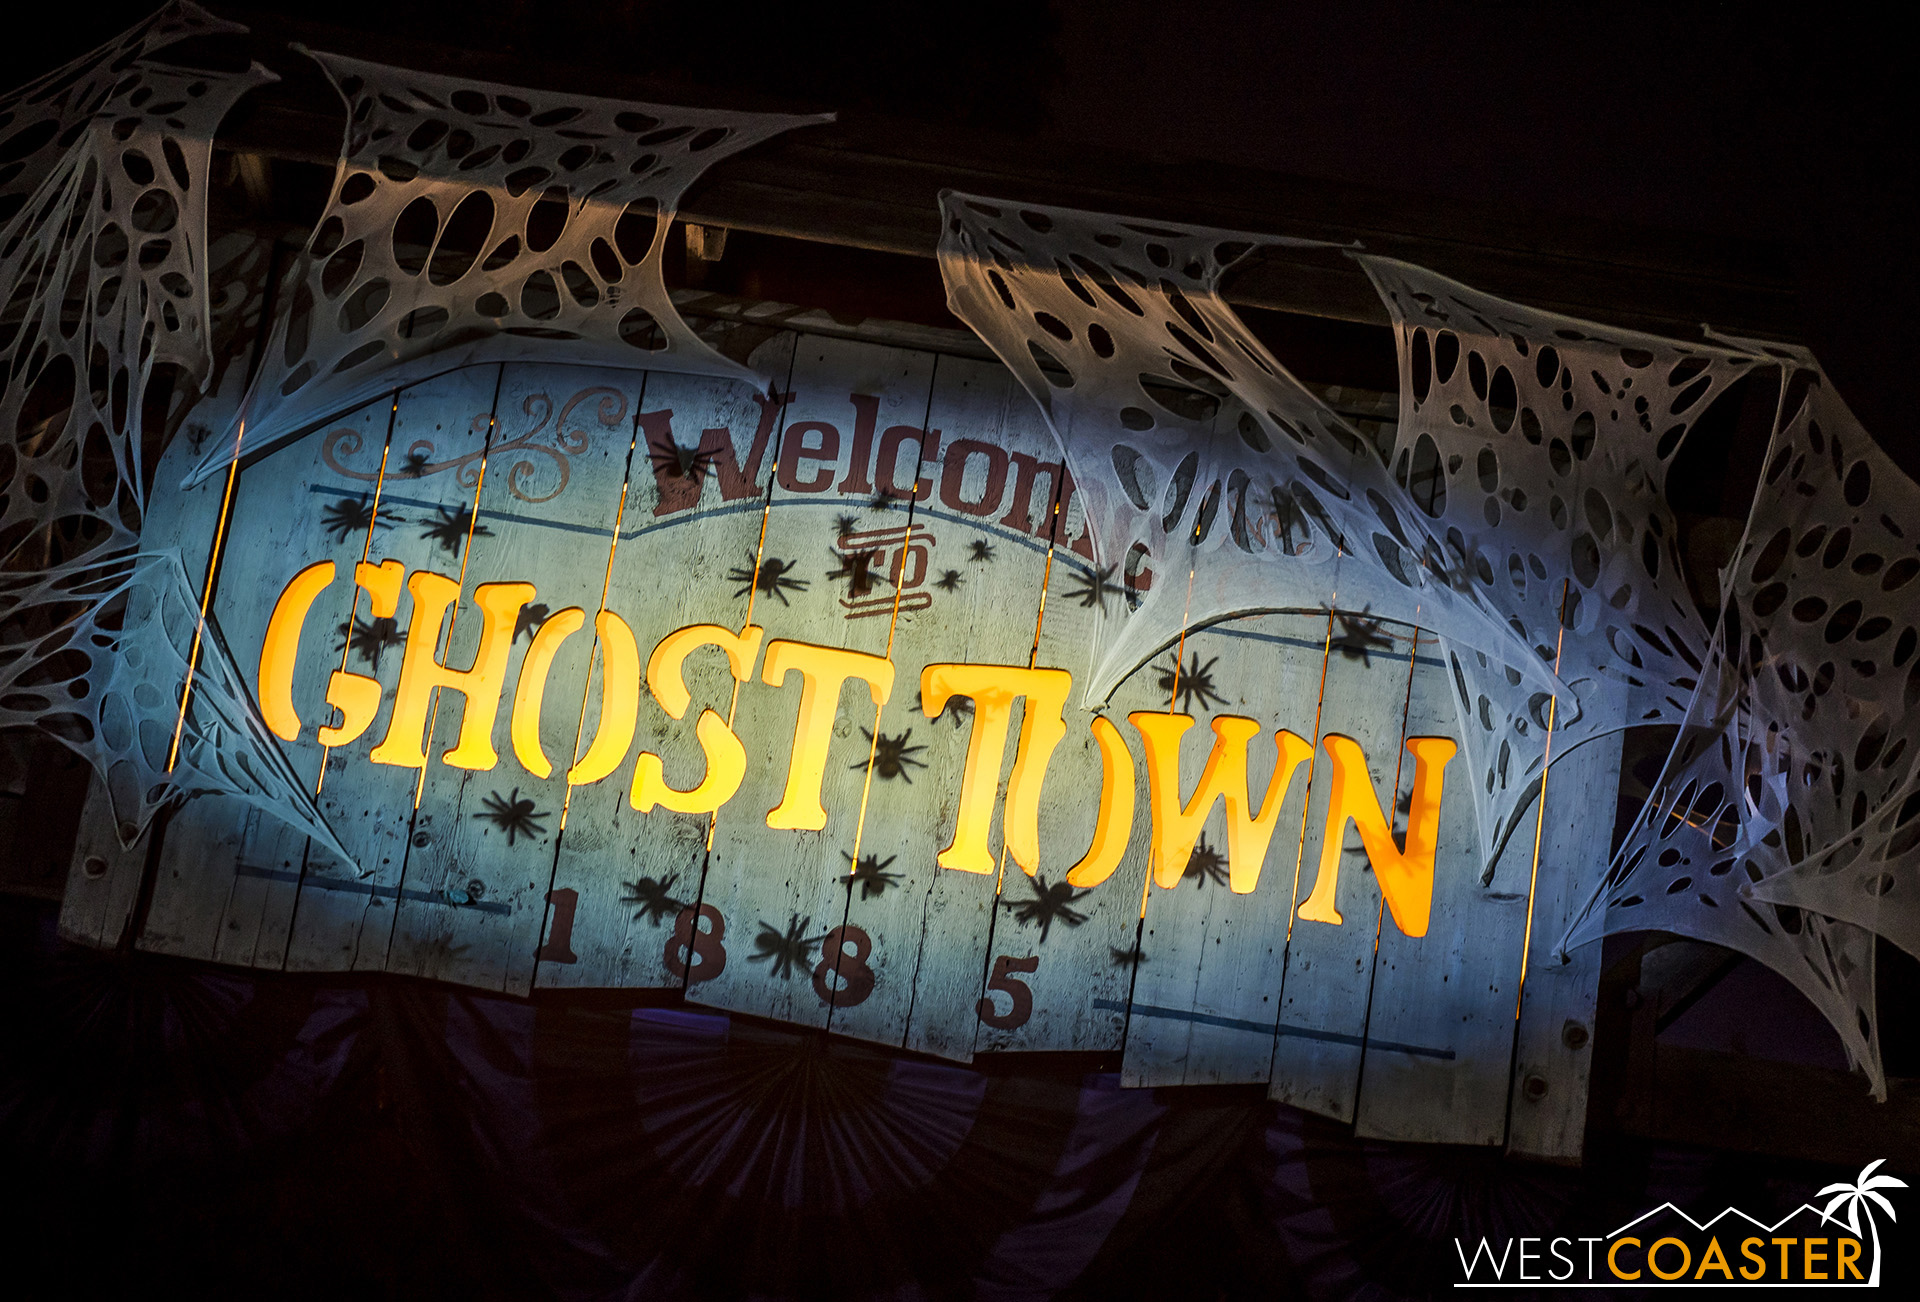 The Ghost Town sign has some new creepy crawly projections this year.